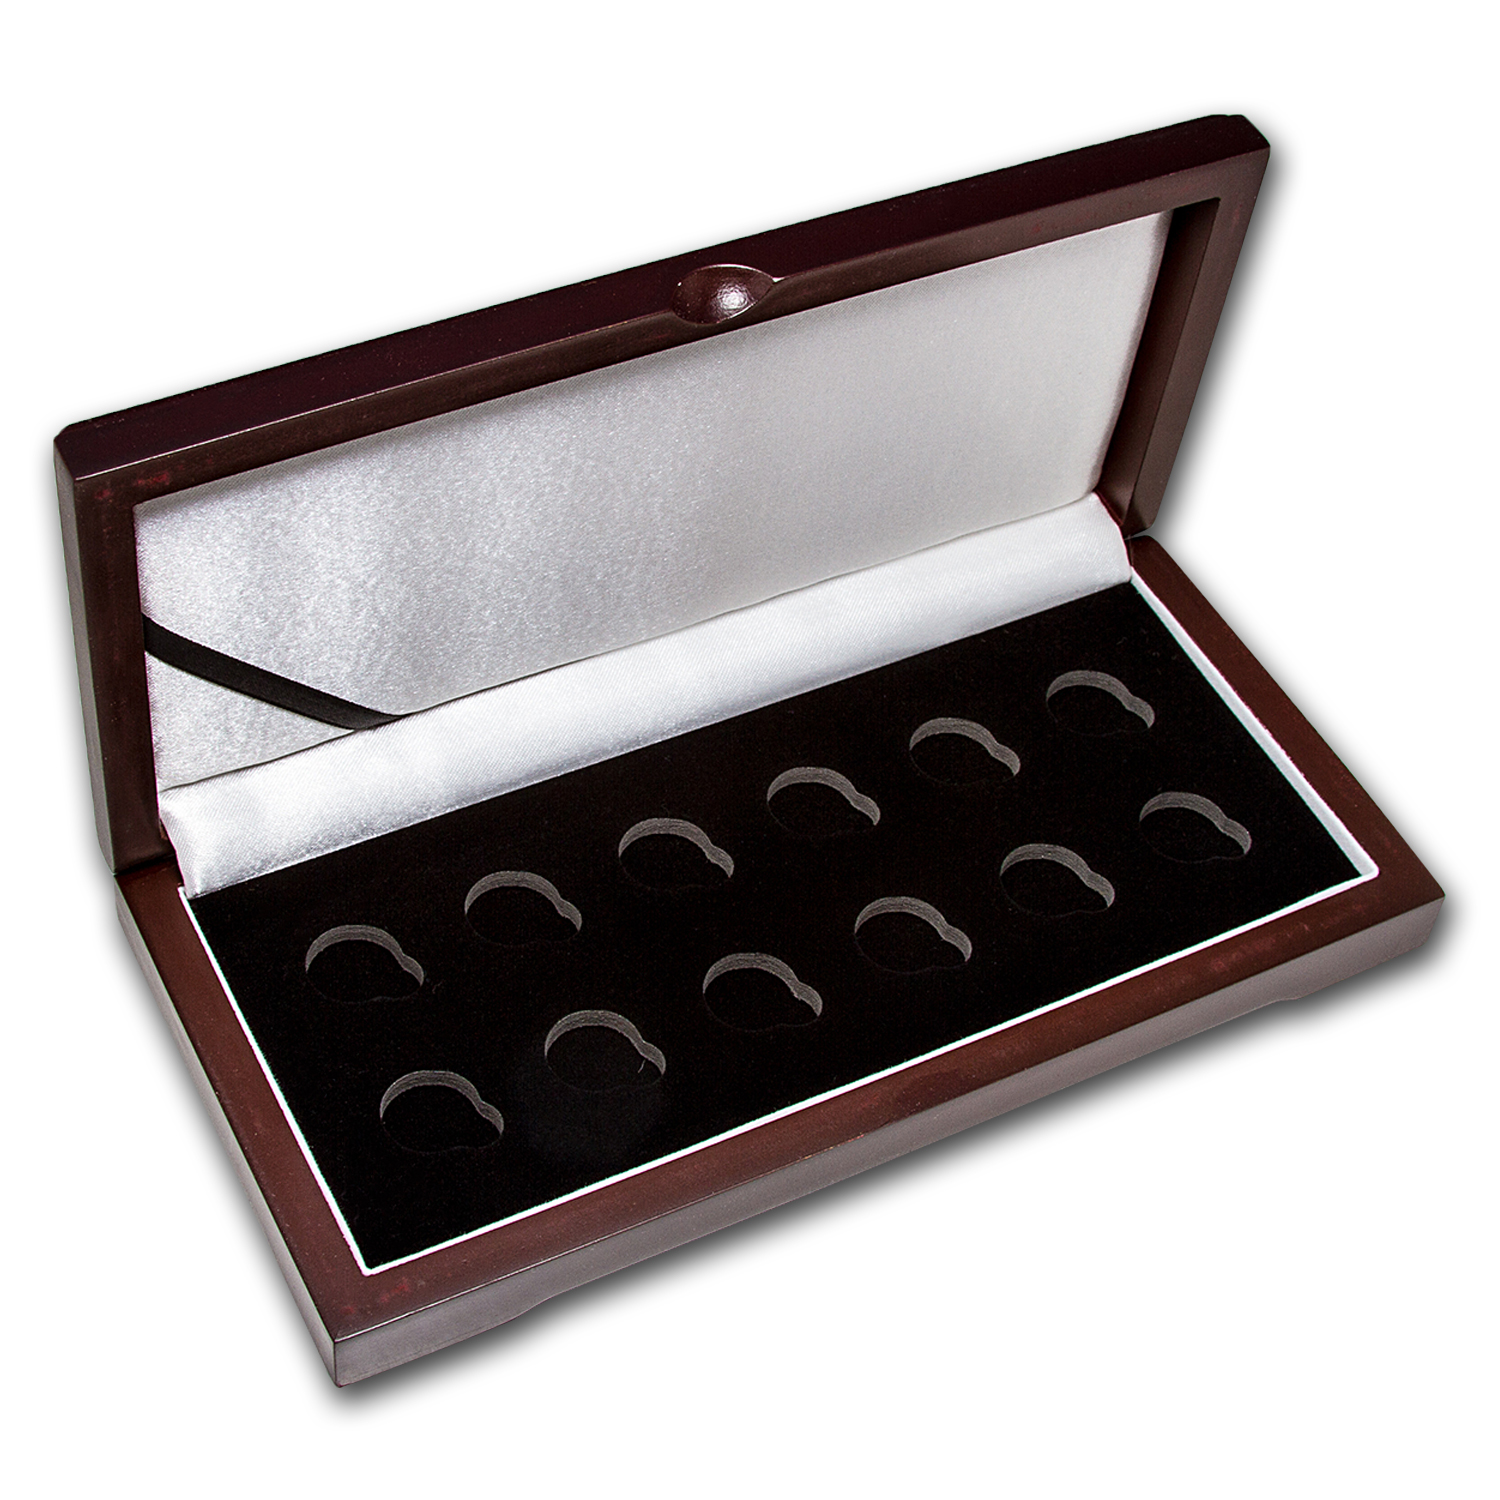 Lunar Series I (1/20 oz Gold) - 12 Coin Wood Presentation Box